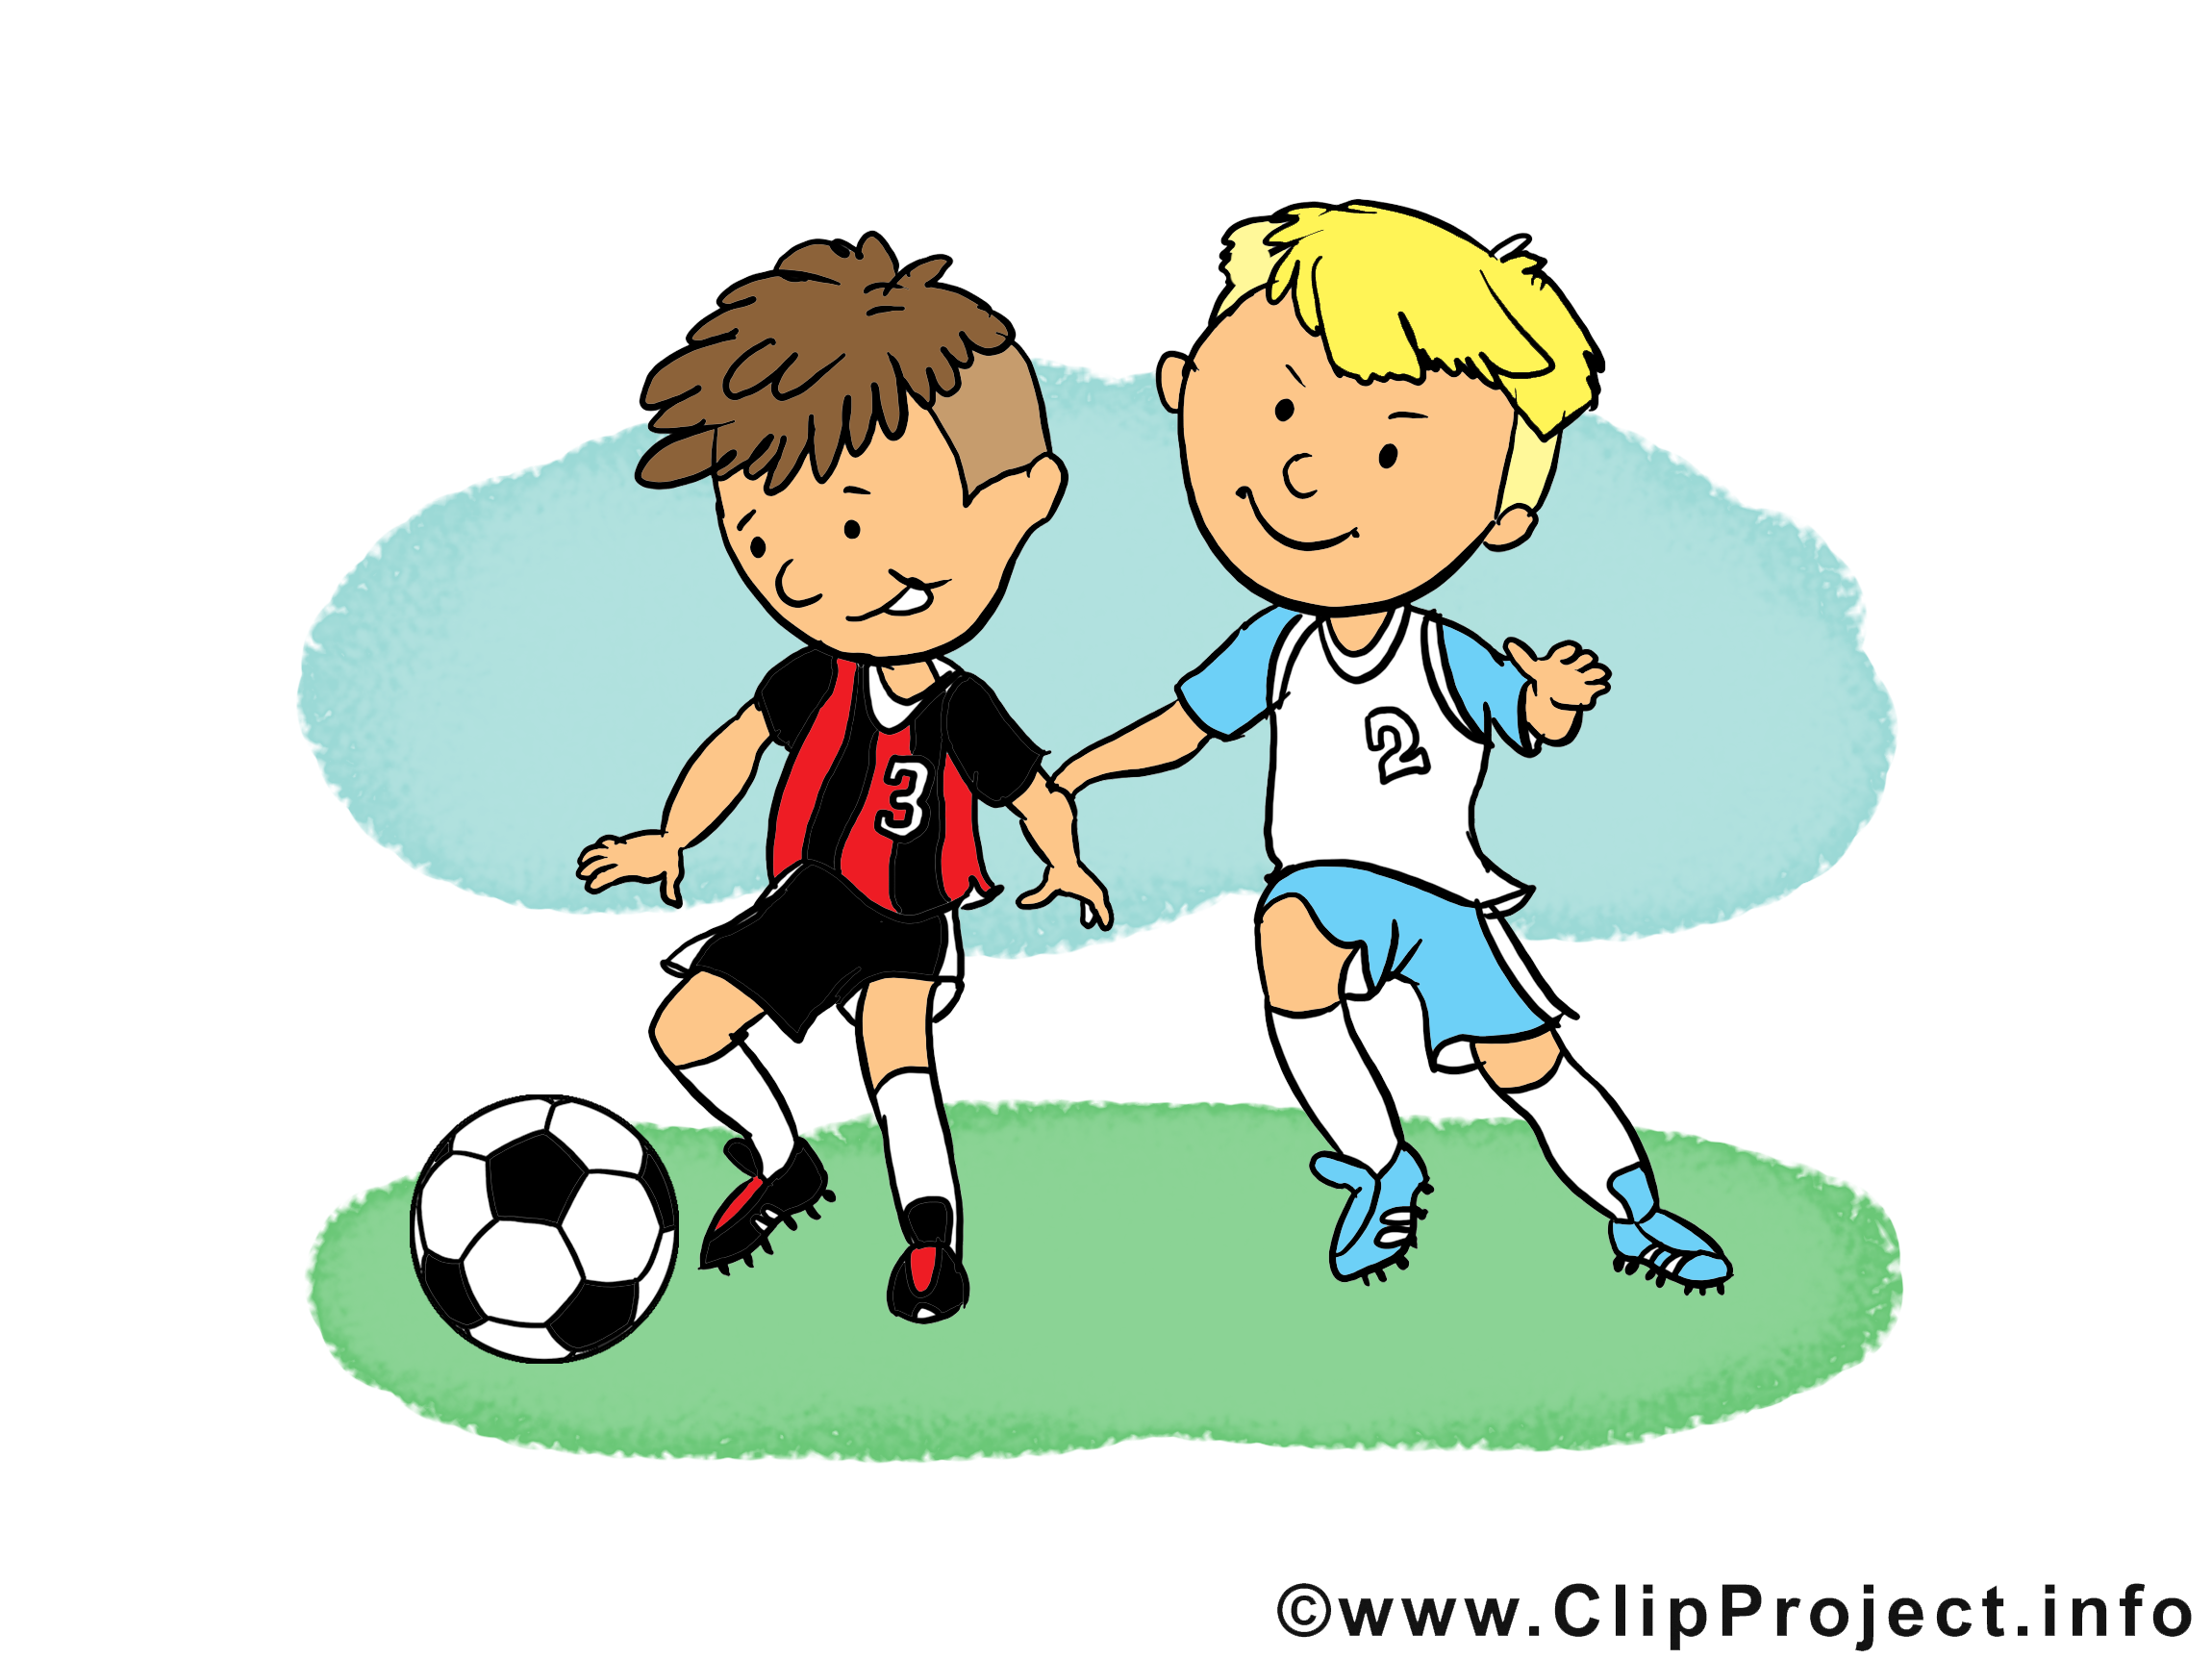 enfants image gratuite football cliparts football Free Horse Clip Art Free Art Supplies